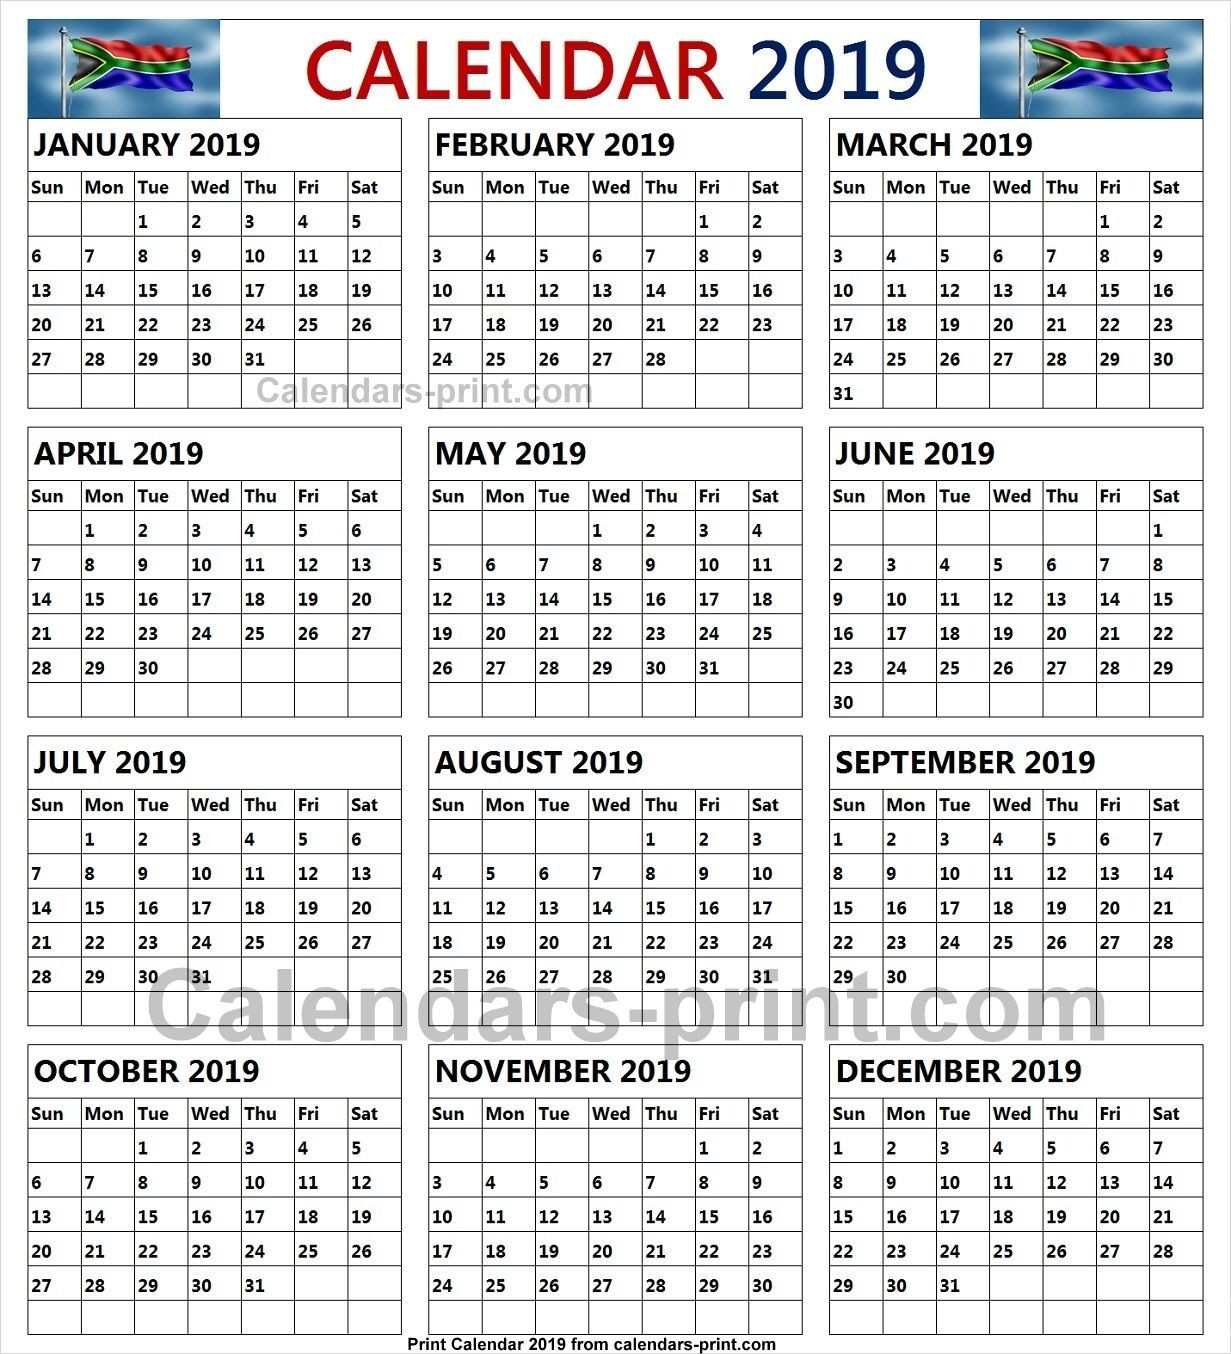 2019 South African Calendar With Public Holidays | 2019-Calendar 2020 With Holidays South Africa